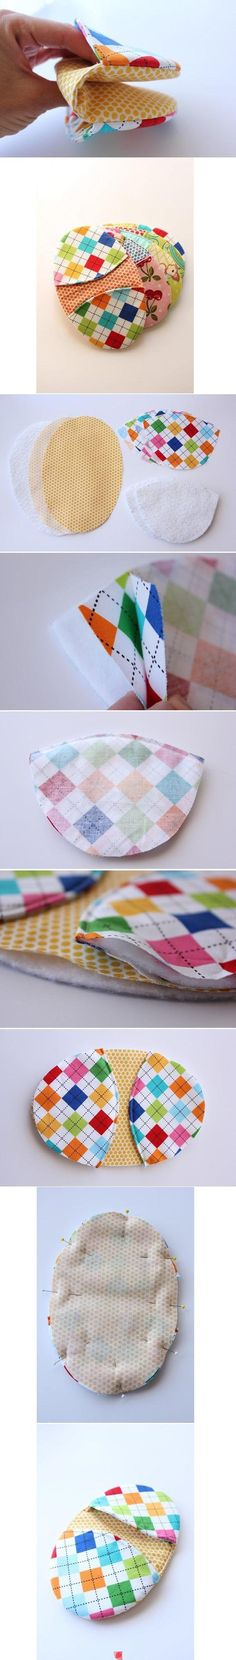 Tutorial to Make: POT HOLDER. Original photos from…